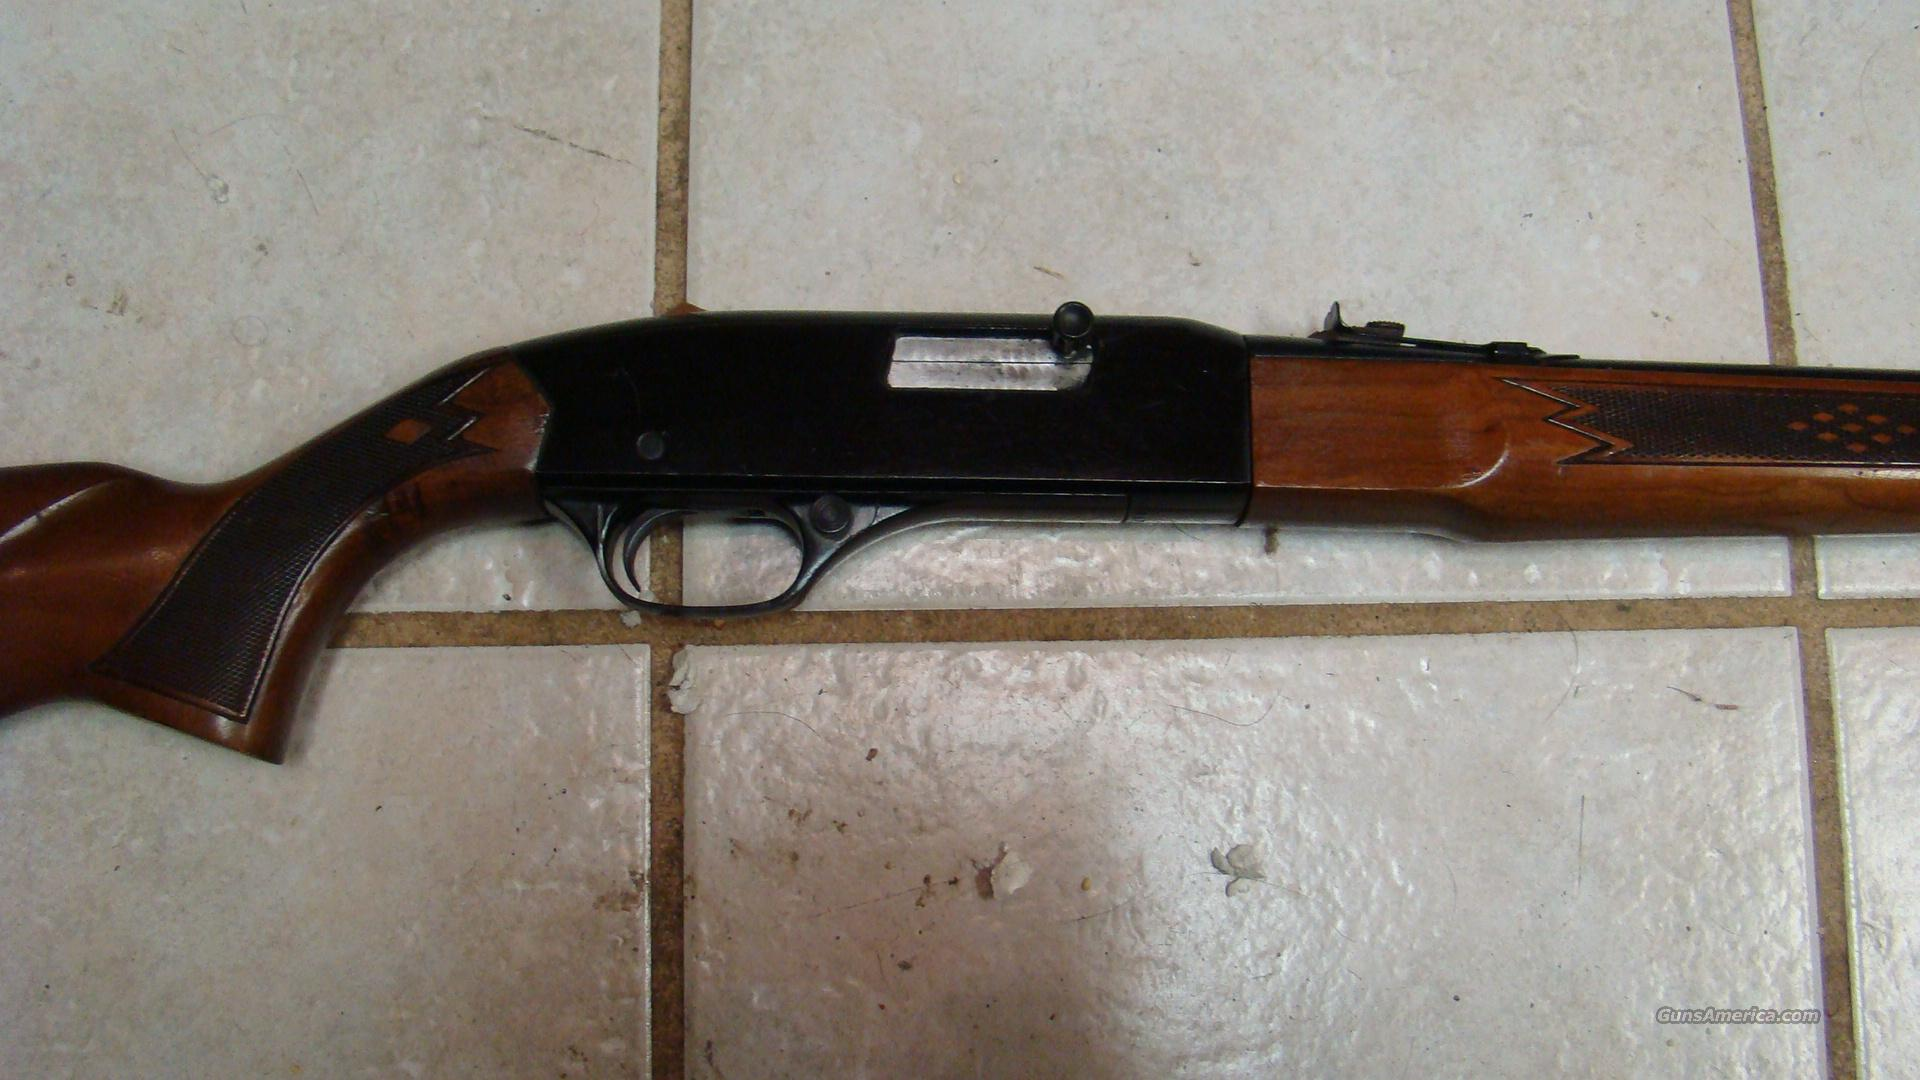 WINCHESTER MODEL 290 DELUXE VERY NICE CLEAN GUN  Guns > Rifles > Winchester Rifles - Modern Bolt/Auto/Single > Autoloaders